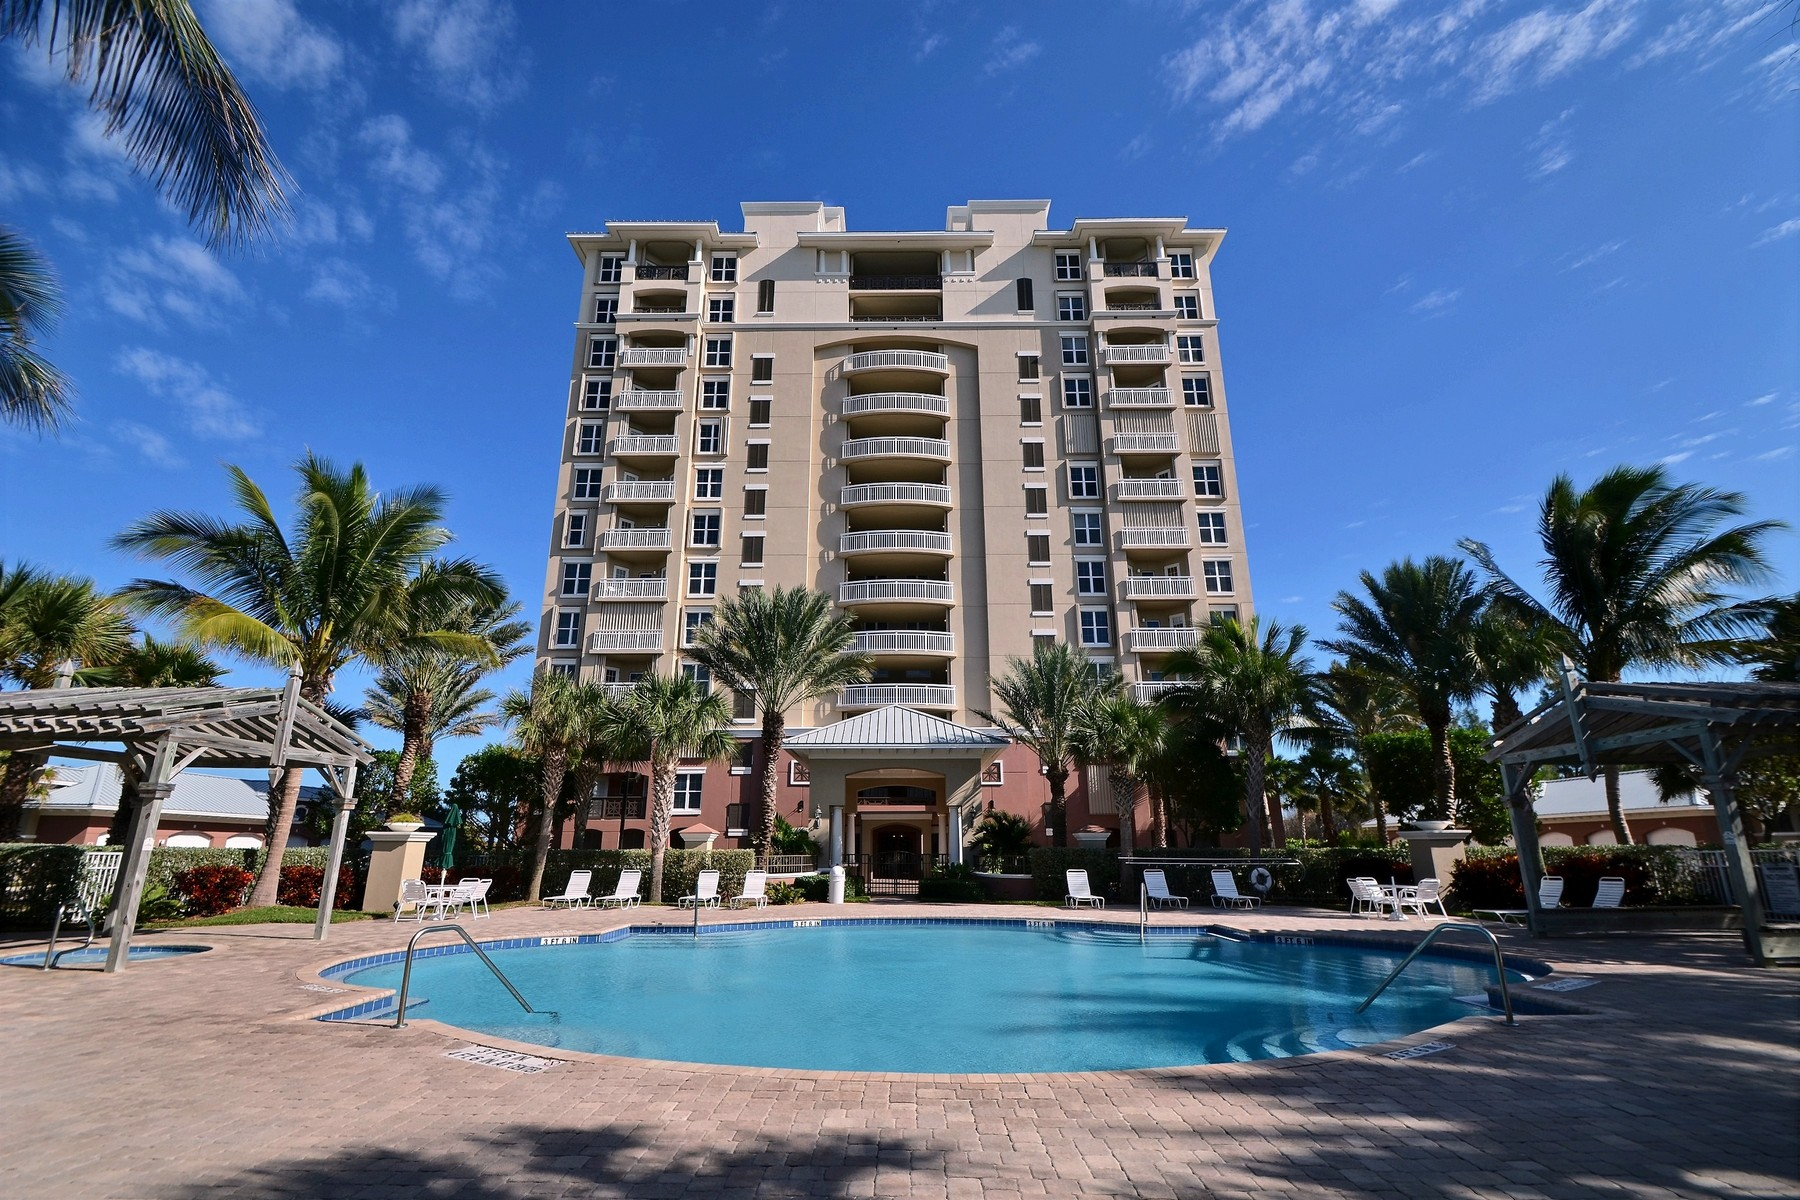 Condomínio para Venda às Grand Isle Condo with Stunning Ocean Views 3702 N Highway A1A #704 Hutchinson Island, Florida 34949 Estados Unidos